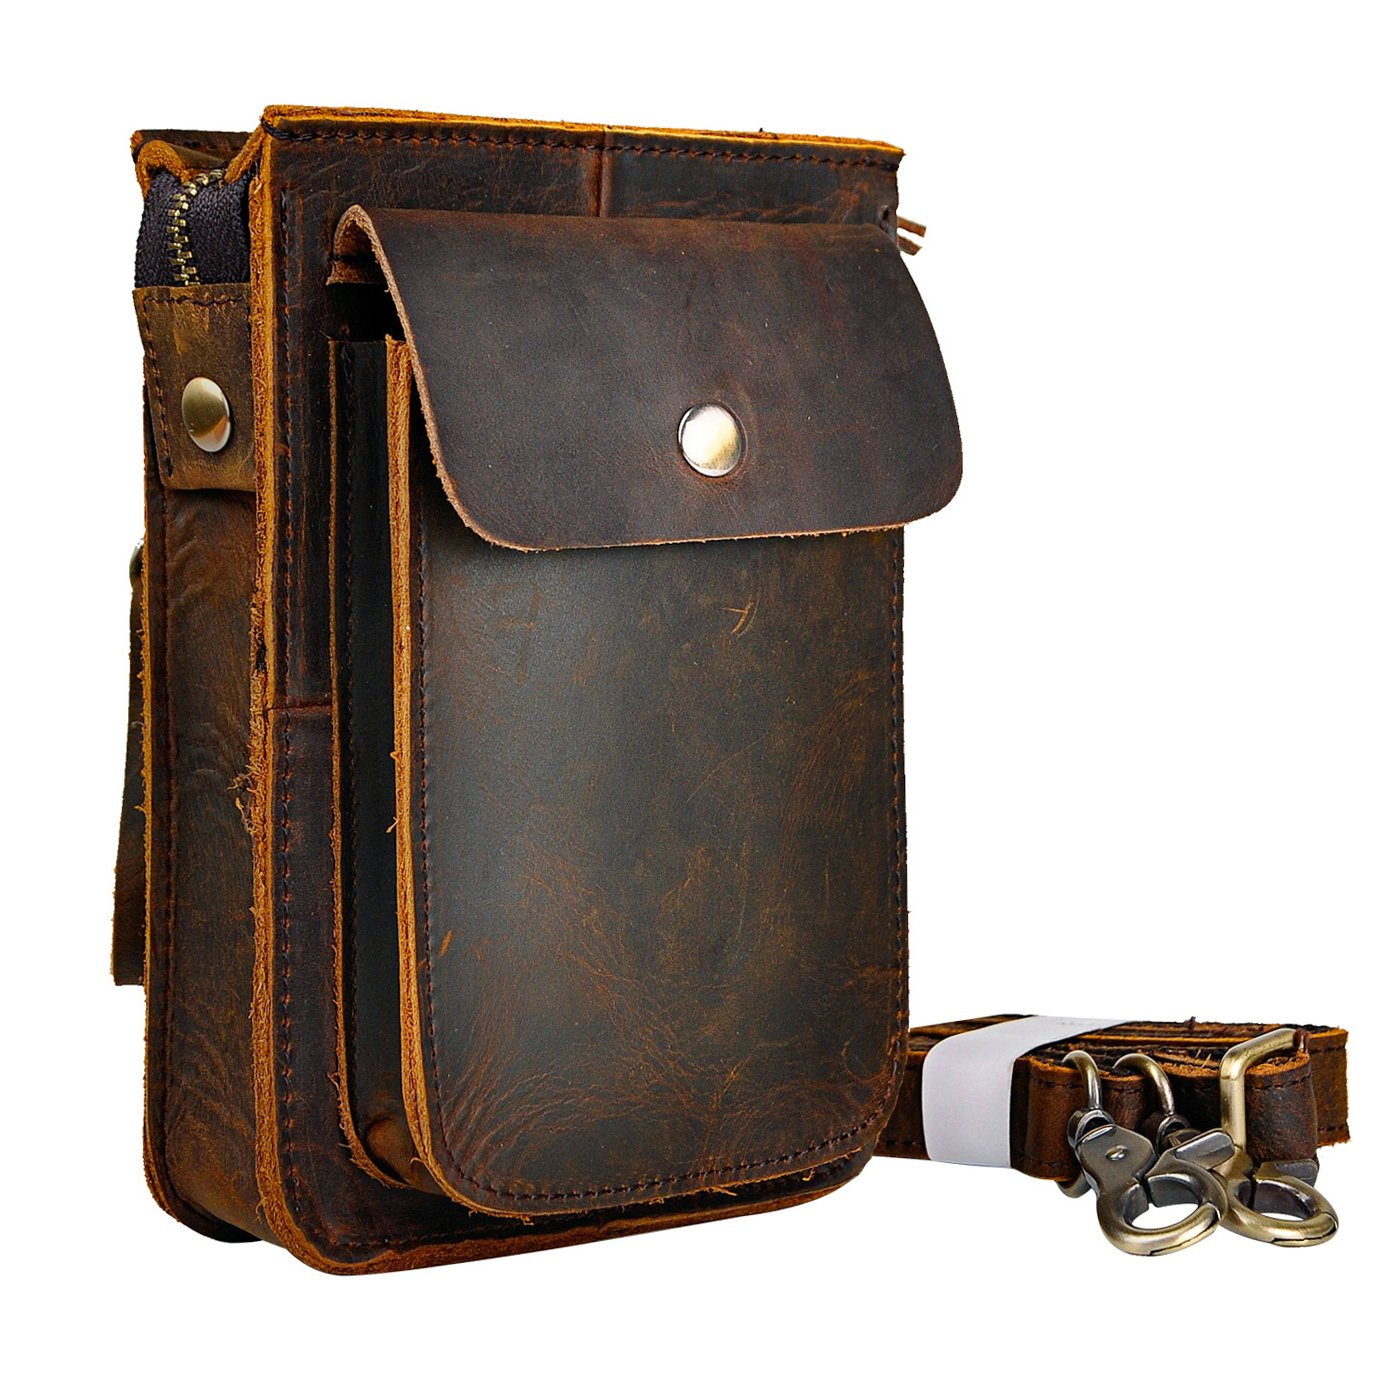 Le'aokuu Mens Genuine Leather Fanny Messenger Shoulder Satchel Waist Bag Pack (Dark Brown)